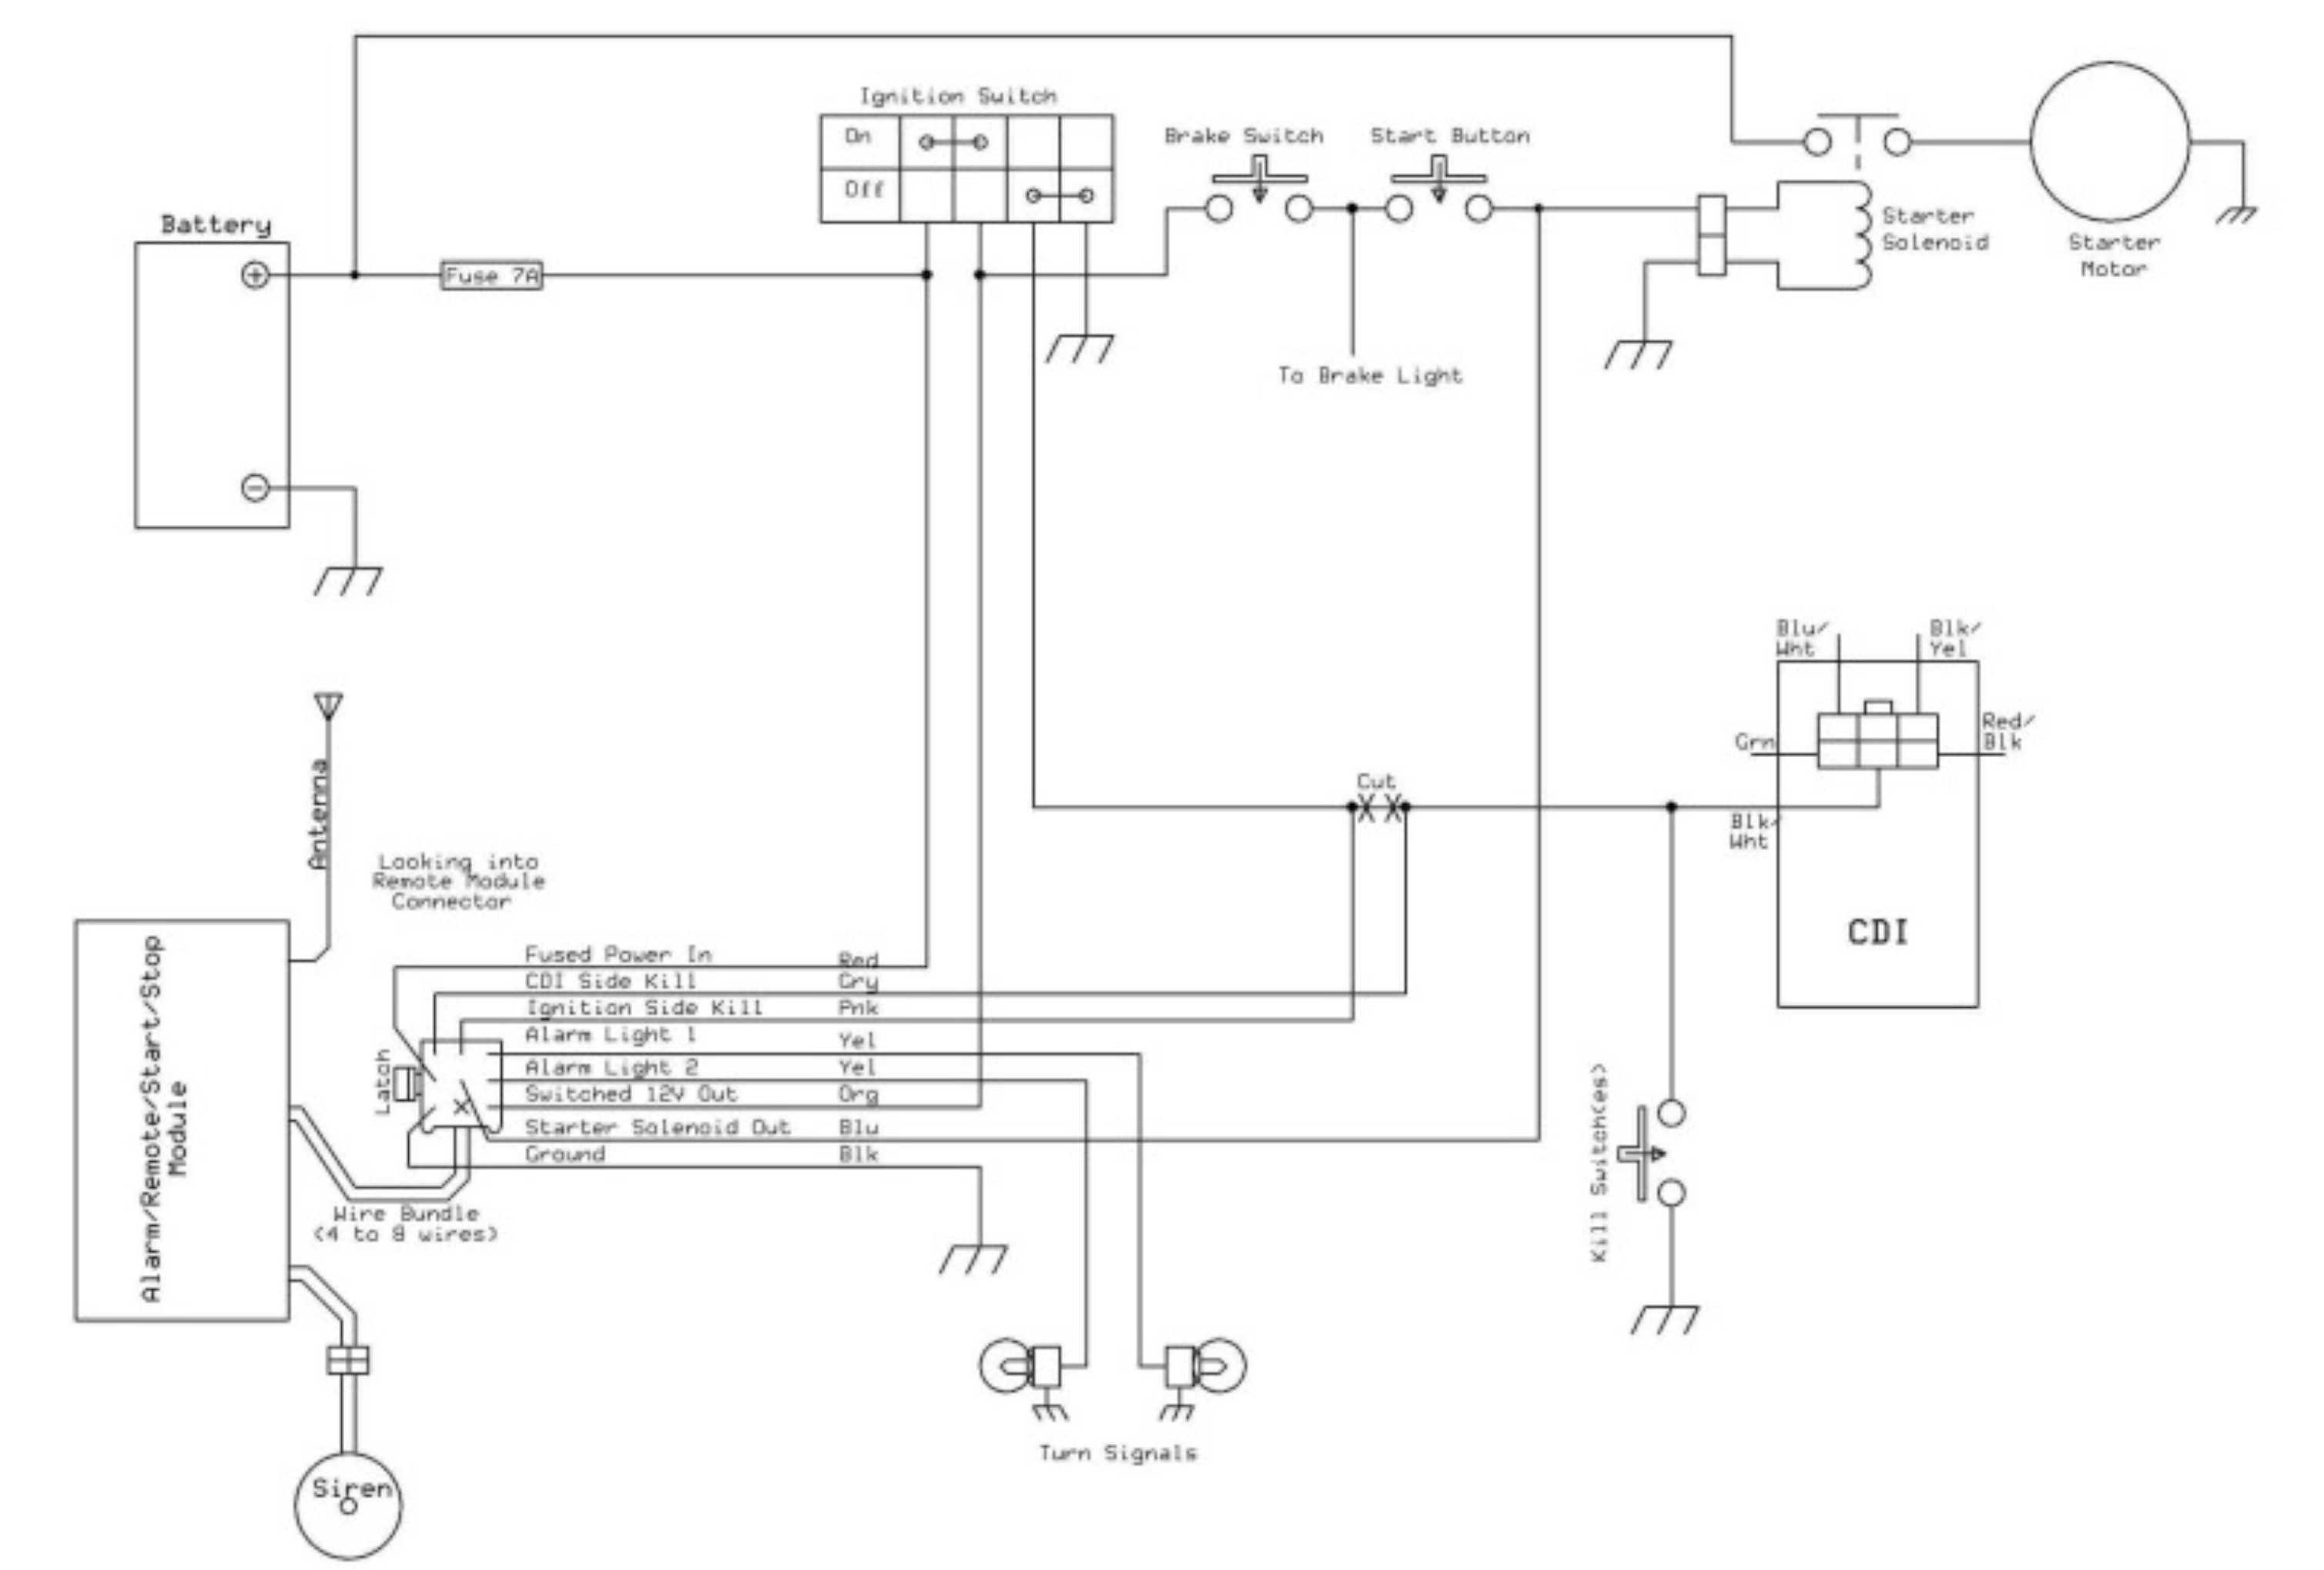 Wiring Schematic For Boreem Scooter - Wiring Diagram Article on 250cc scooter electrical schematic, scooter alarm system schematic, razor schematic, electric mobility rascal 230 electrical schematic, for chinese scooter alarm schematic, electric scooter schematic,